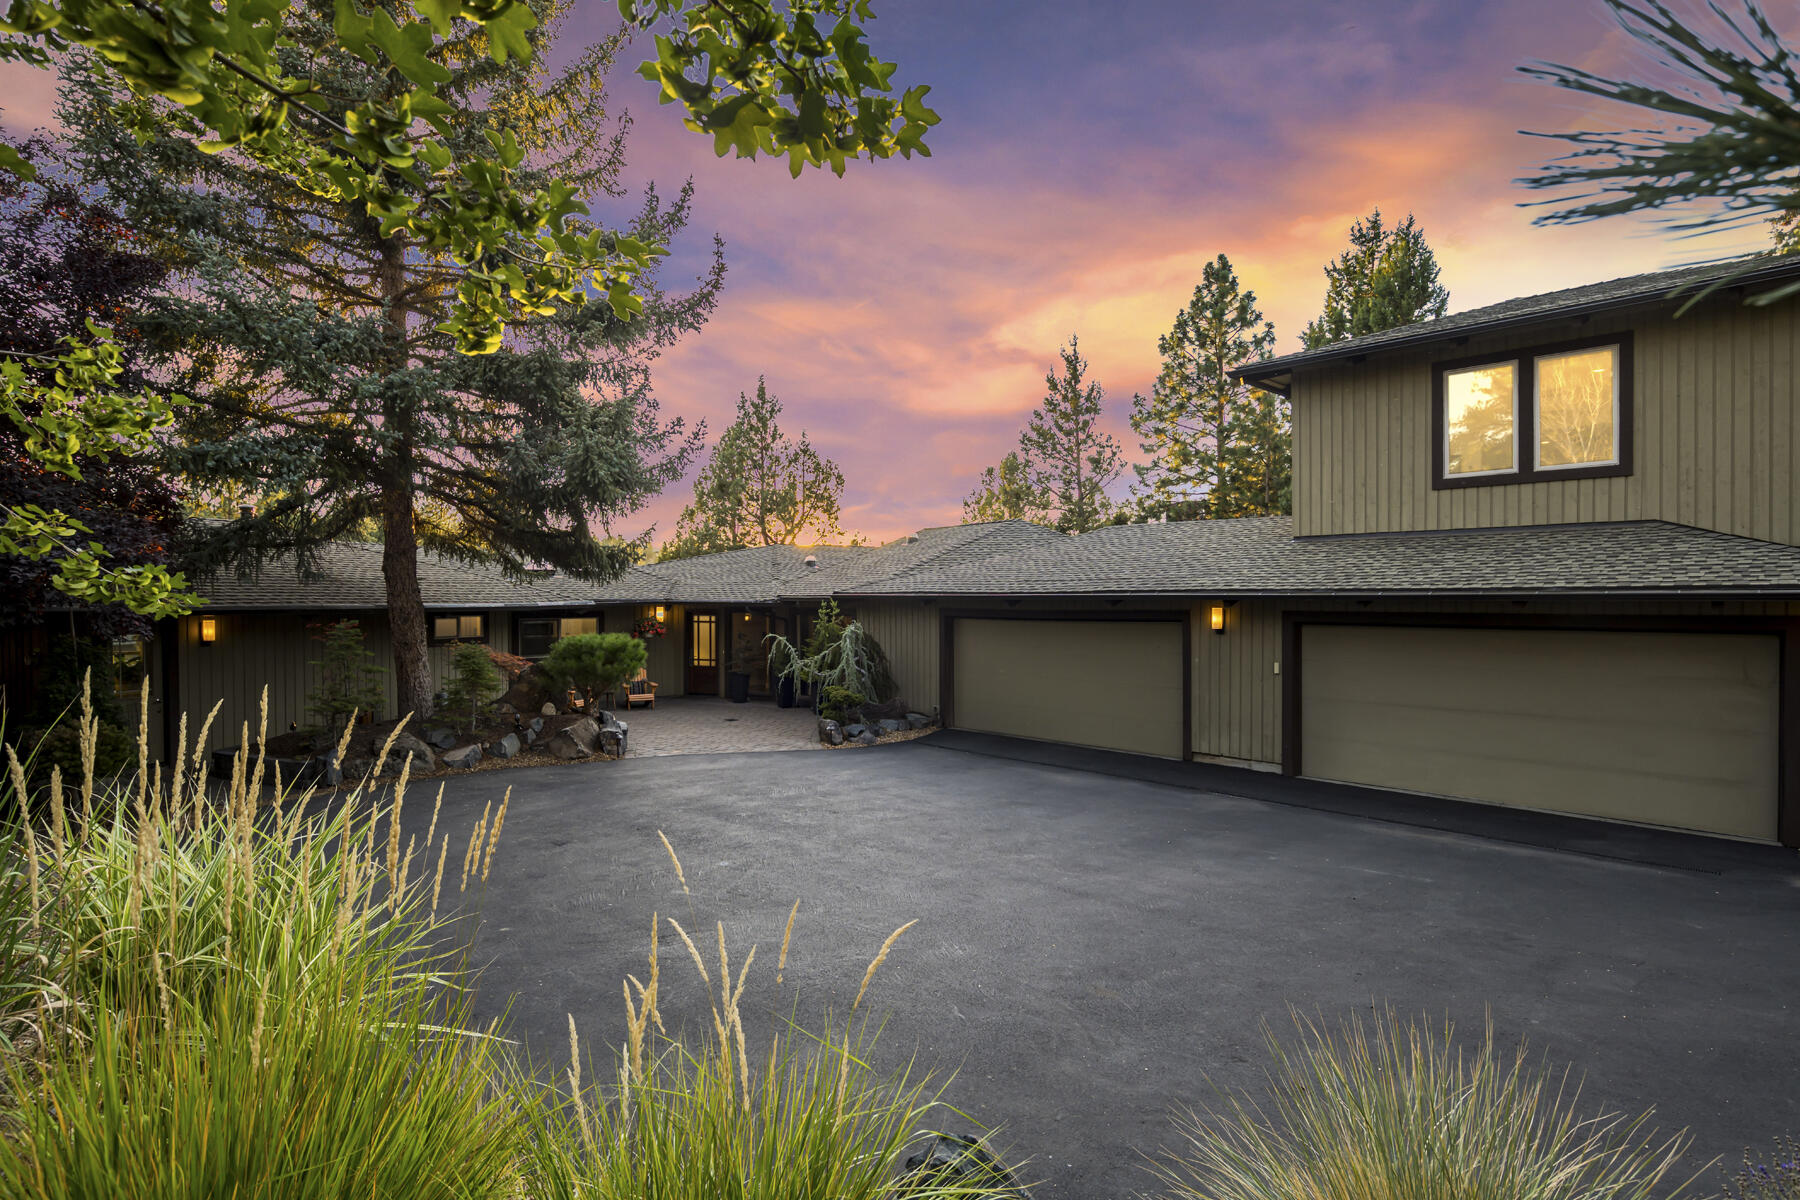 Perched high above the Deschutes River and surrounded by mature trees and lush landscaping, this magnificent property is perfectly positioned to maximize its breathtaking views of the river canyon, Broken Top, and the Three Sisters. Soak in this extraordinary setting from the back deck dining area or hot tub, or from the stunning living room, where wraparound windows frame the river view. High-end touches include acacia wood flooring, a floor-to-ceiling lava rock fireplace, granite countertops and a 5-burner Thermador range in the remodeled gourmet kitchen, and a built-in wine refrigerator in the dining area. One of two full suites in the home, the owner's suite features floor-to-ceiling windows with river and mountain views and a luxurious bath with dual walk-in closets, dual shower heads, and heated travertine floors. Enjoy a 5-car garage with extensive storage and a 50' RV parking area. An additional living suite over the garage offers a separate entry and privacy for guests.